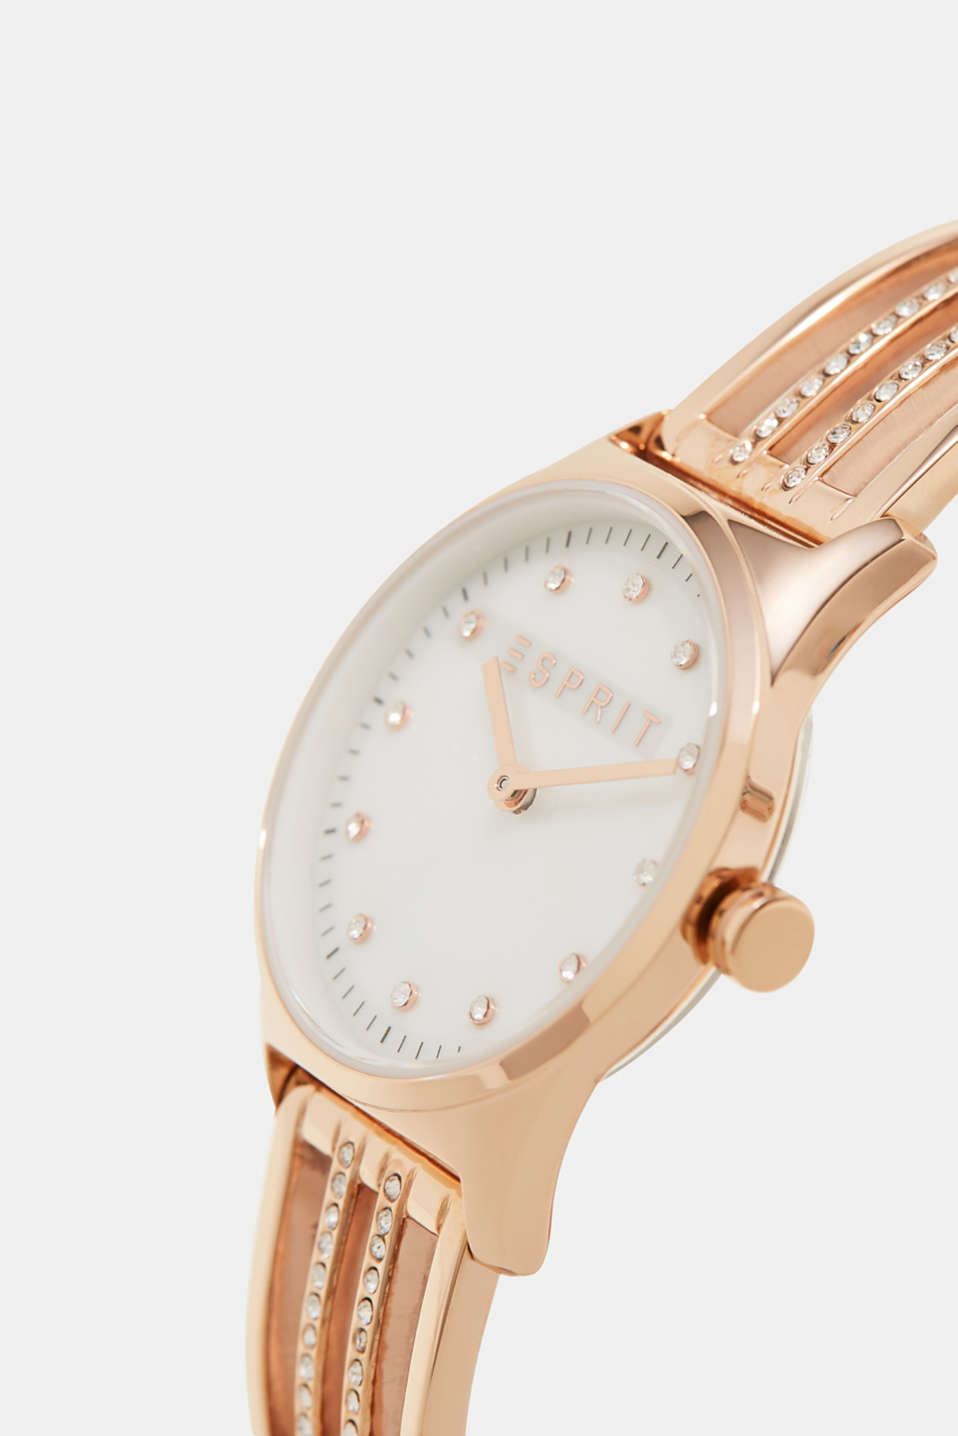 Rose gold watch with zirconia